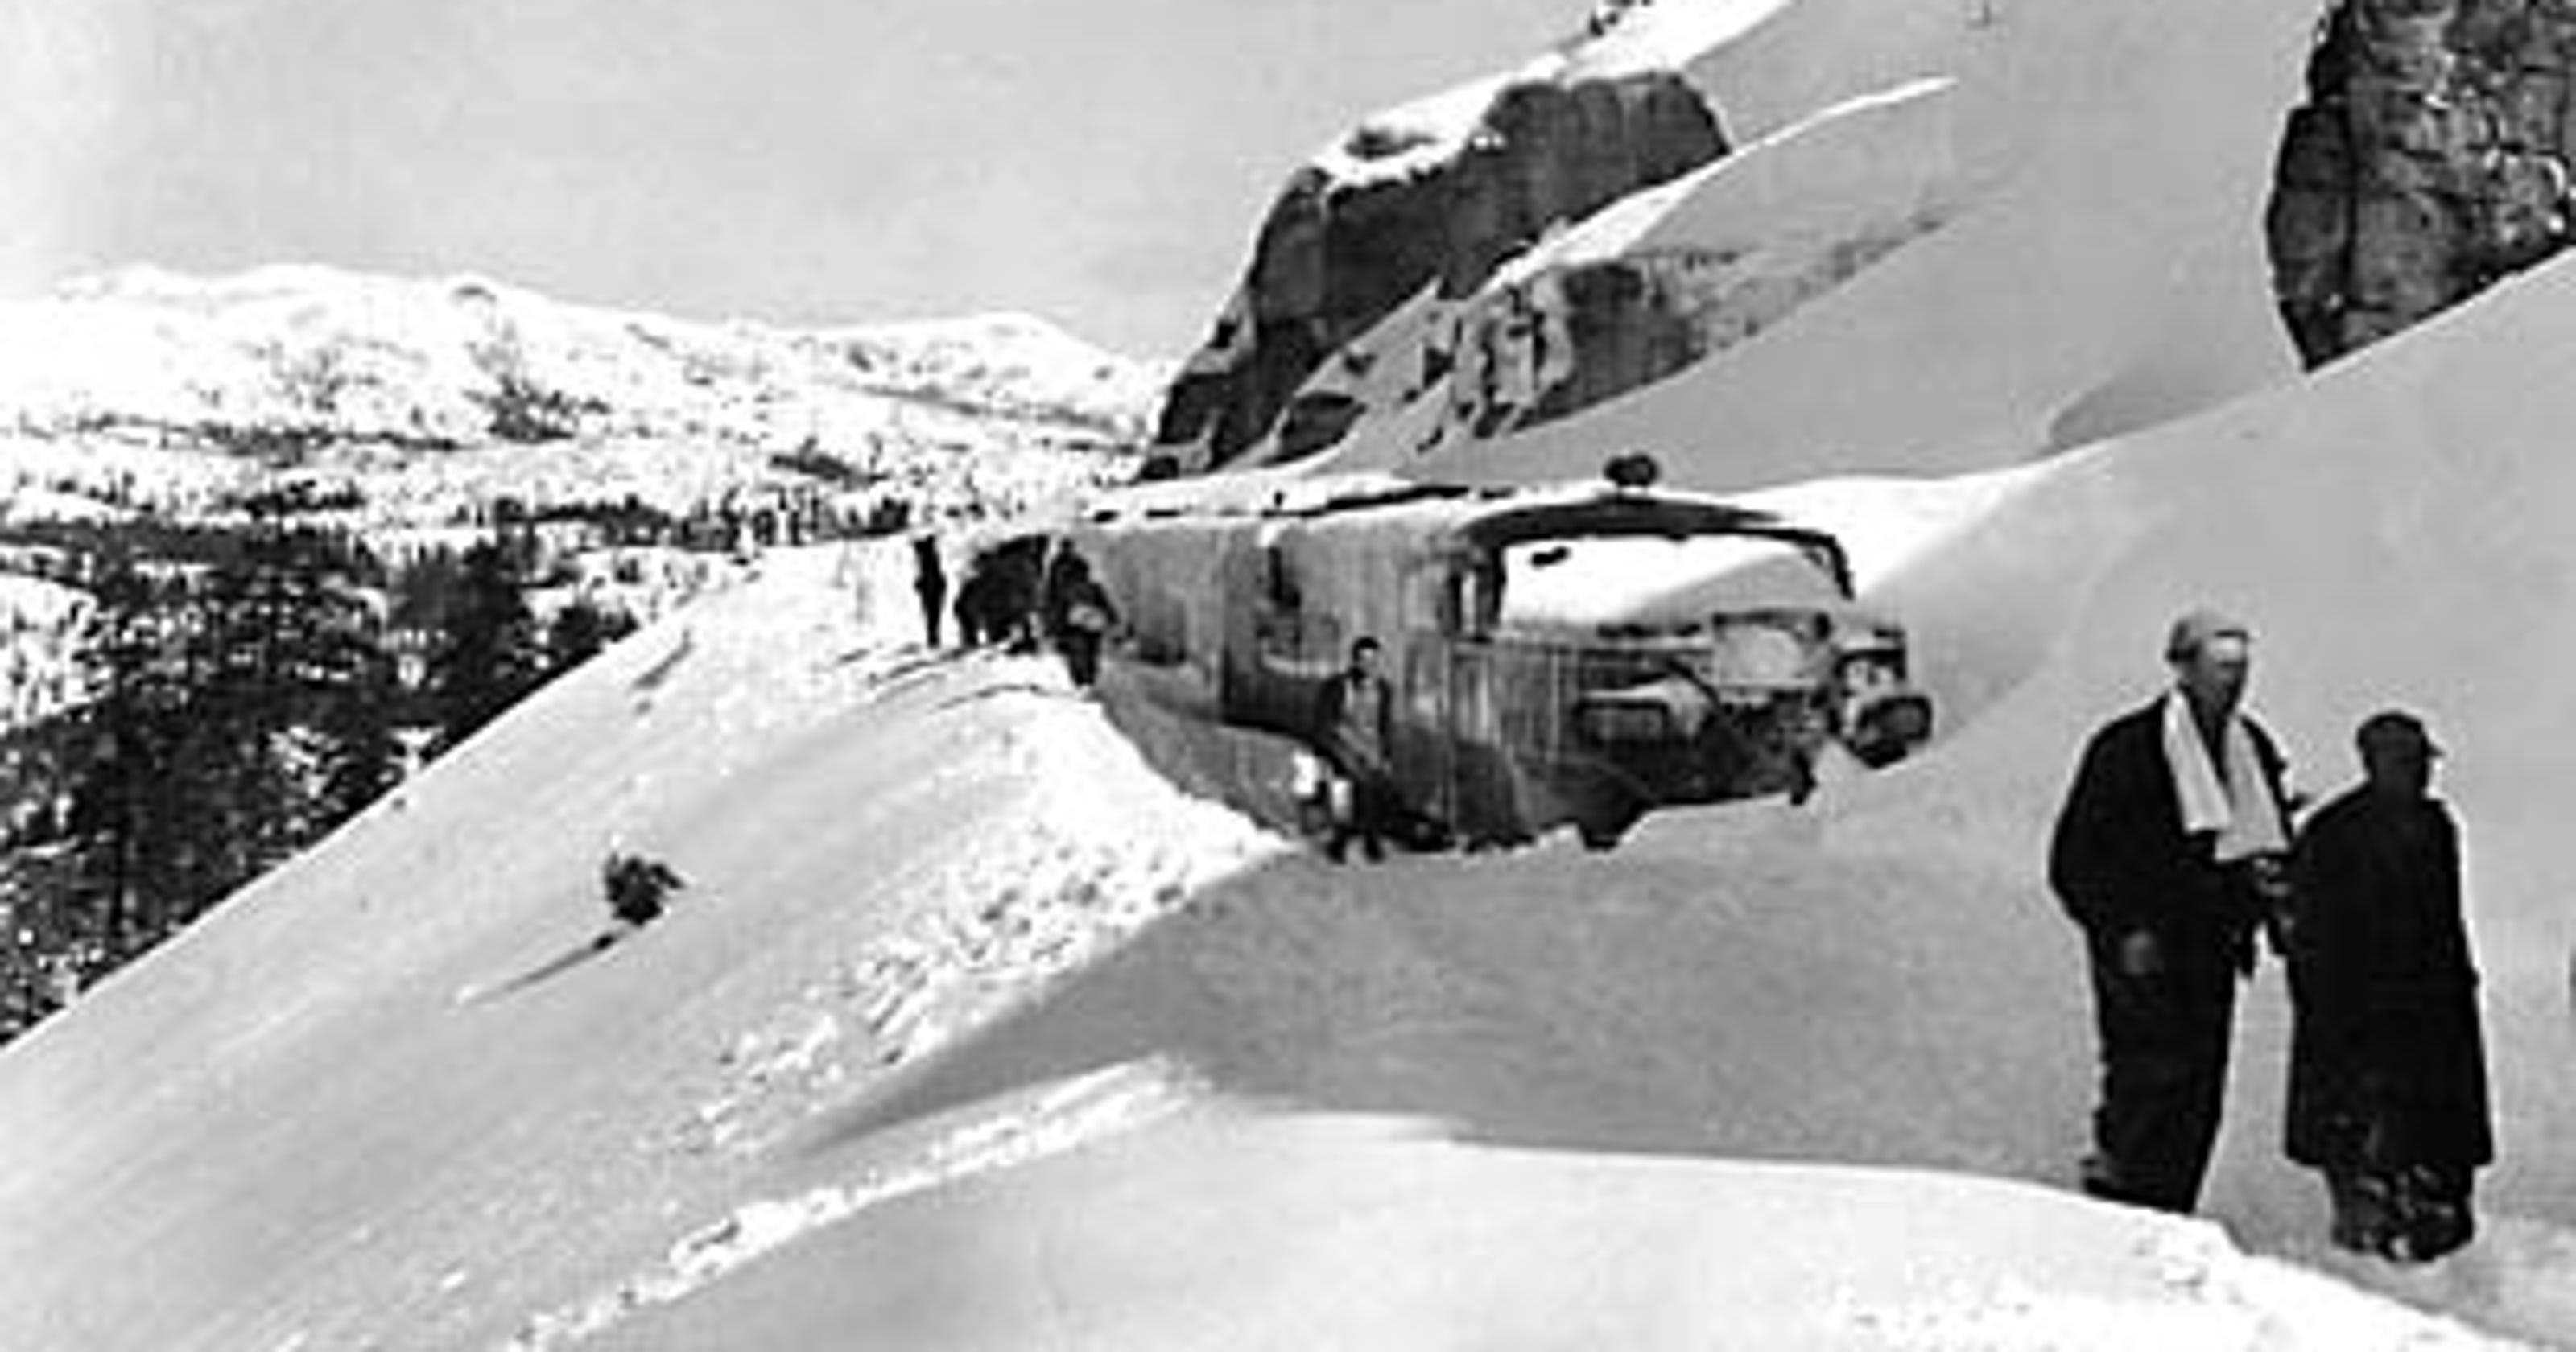 The aftermath of the 1952 stranded SP Streamliner